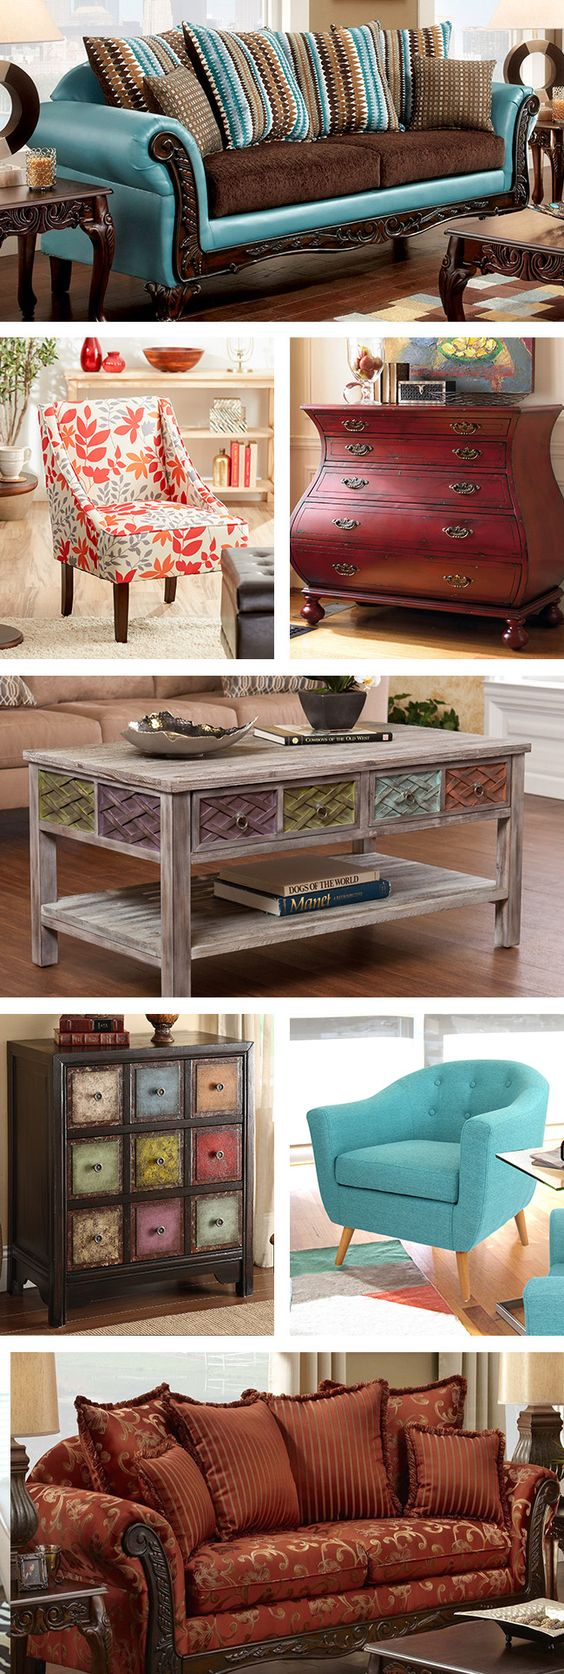 Trendy European Furniture Decoration